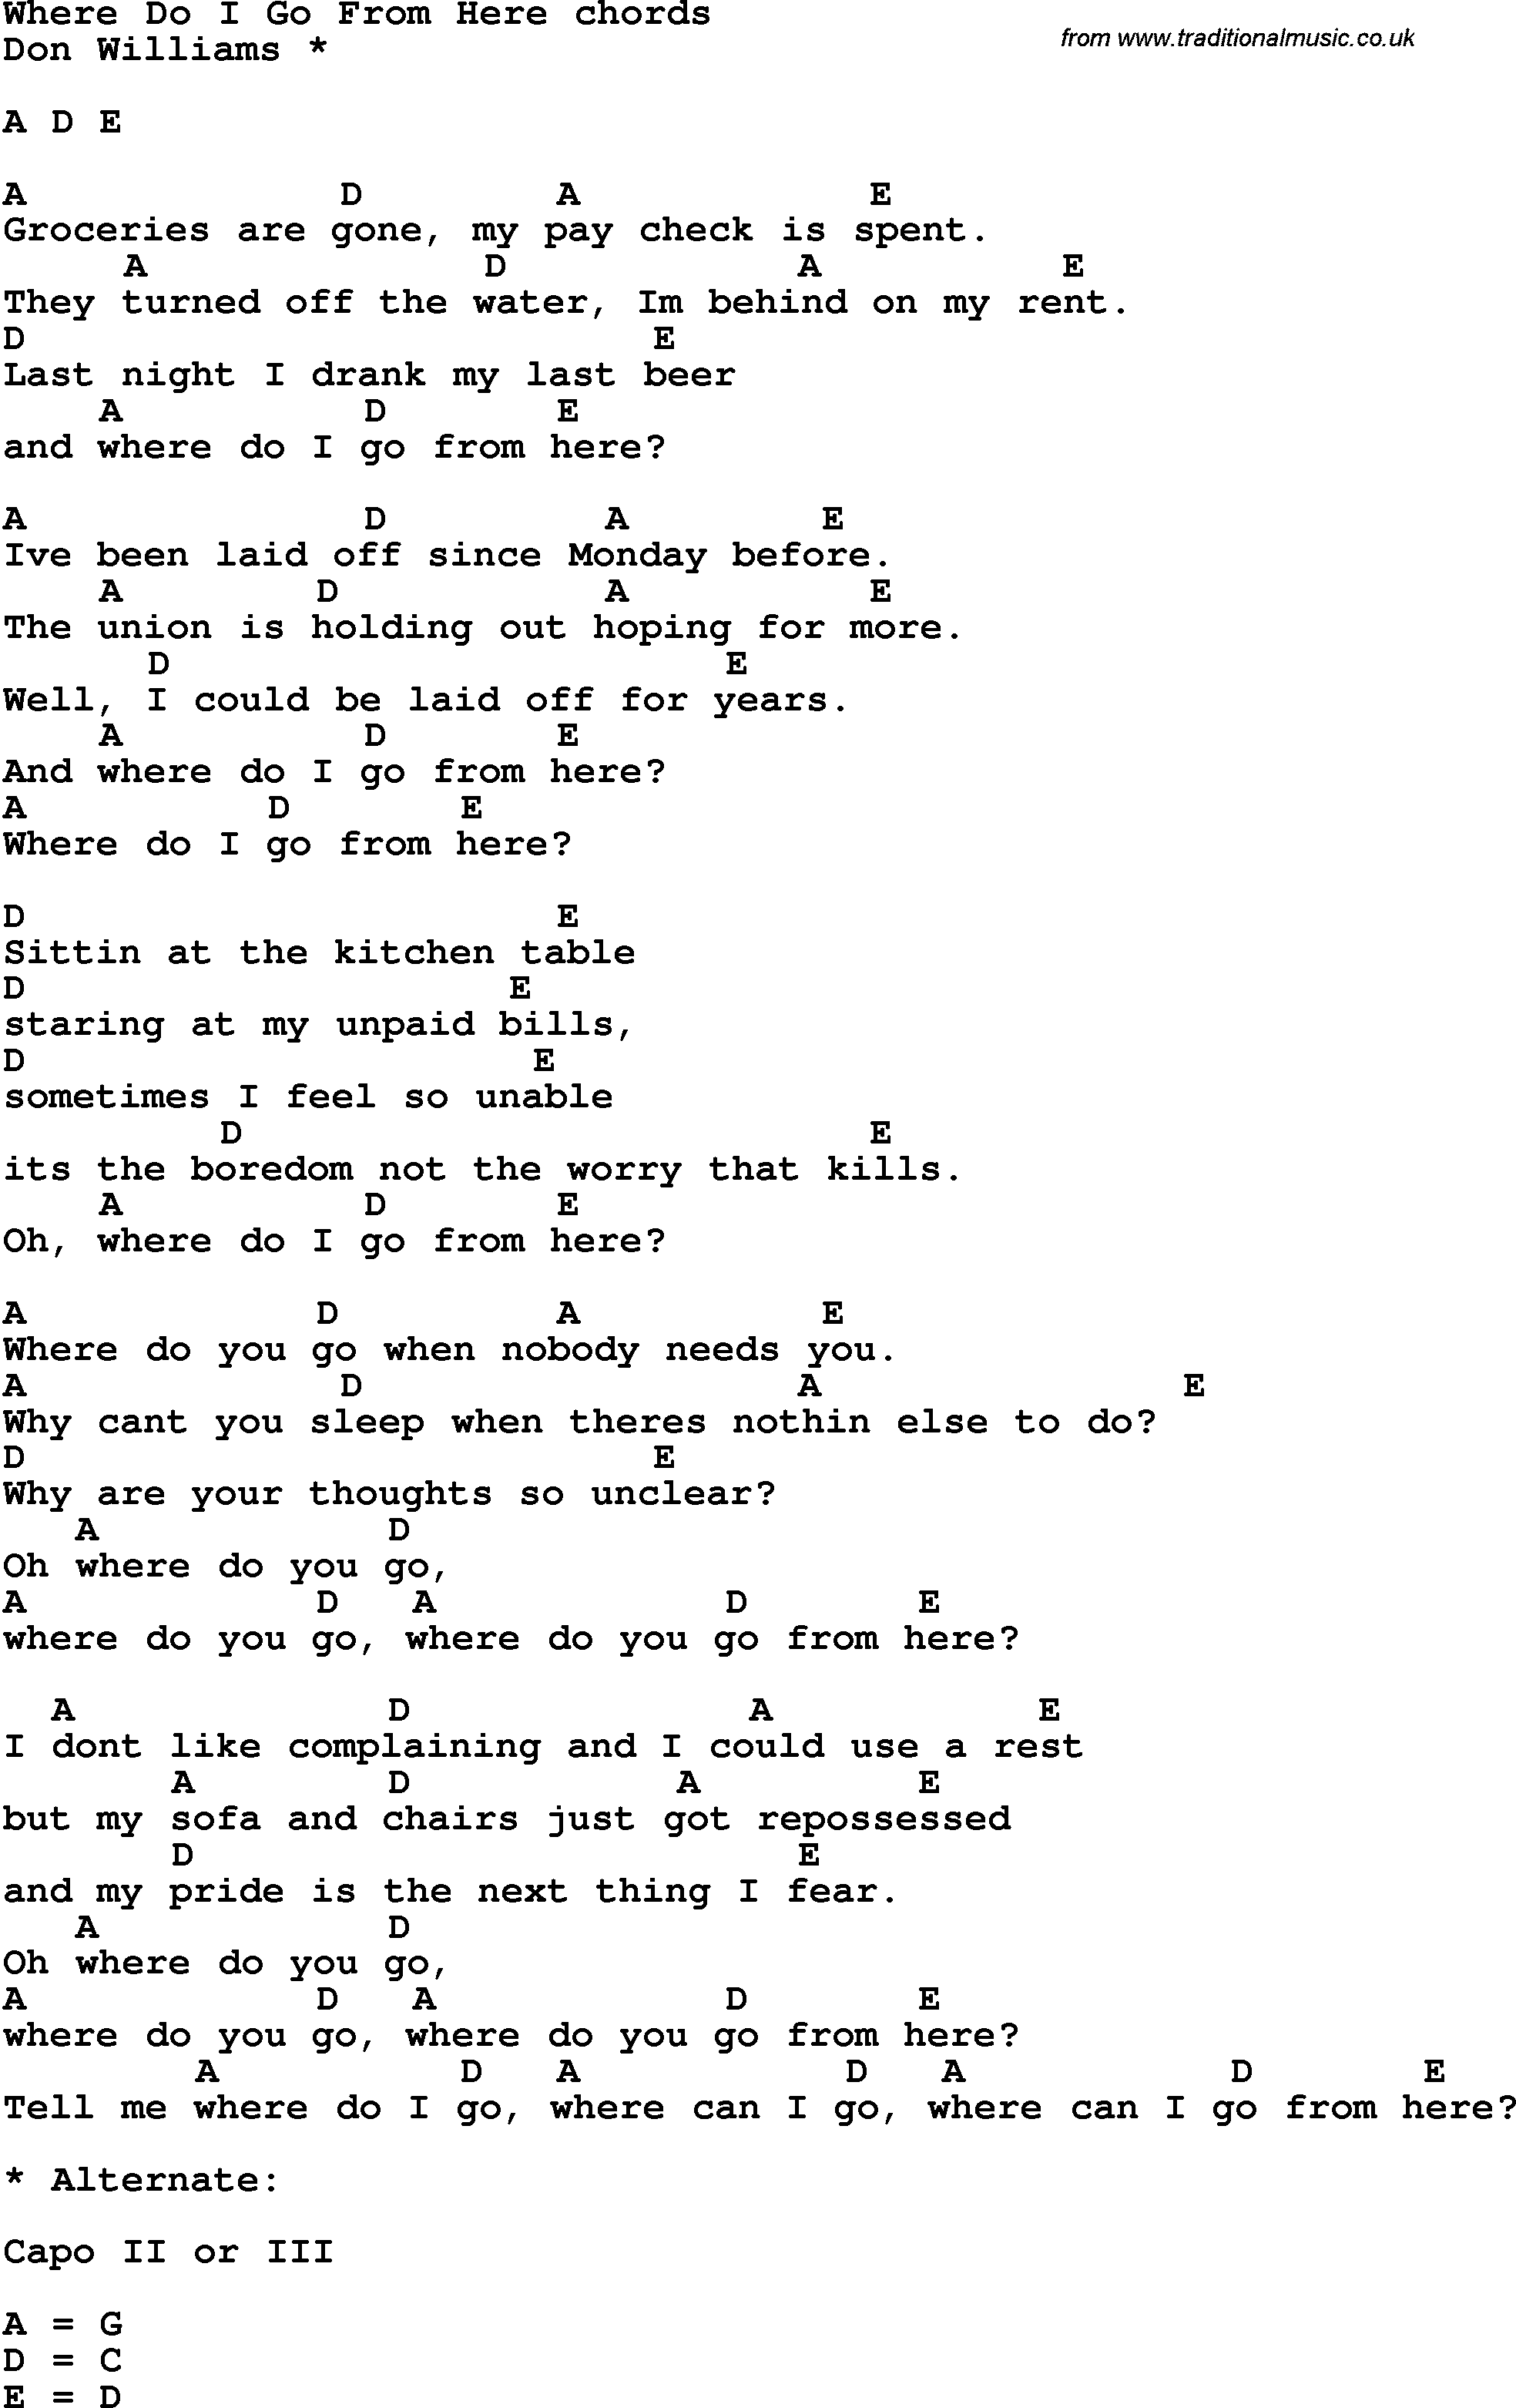 Song Lyrics With Guitar Chords For Where Do I Go From Here